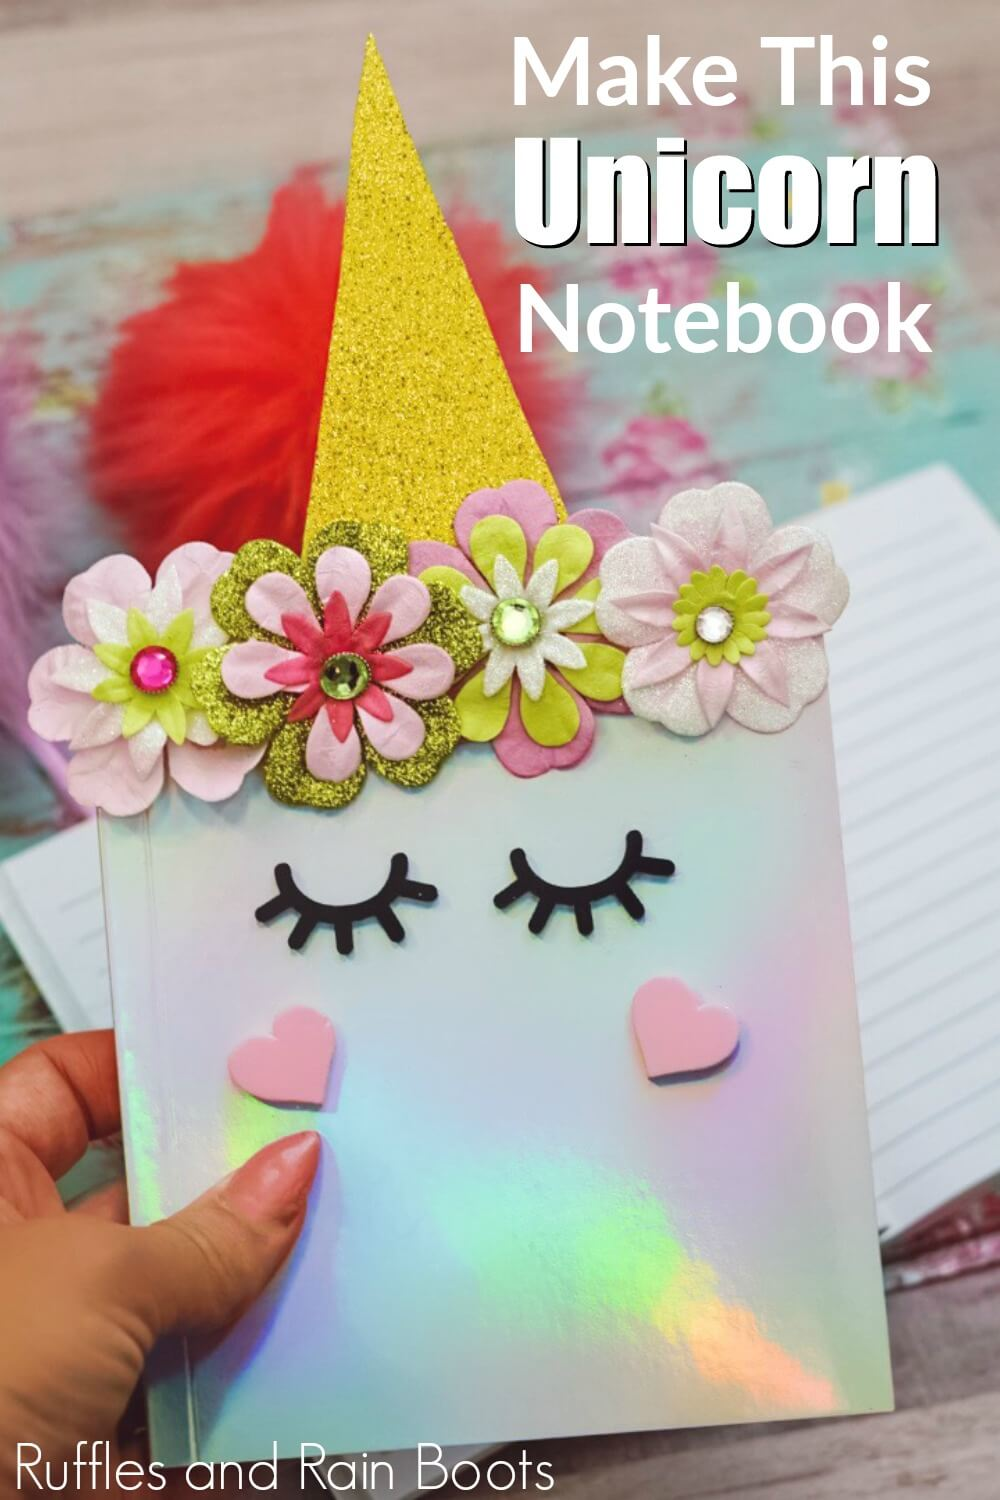 hand holding DIY unicorn notebook for closer image with text Make this Unicorn notebook